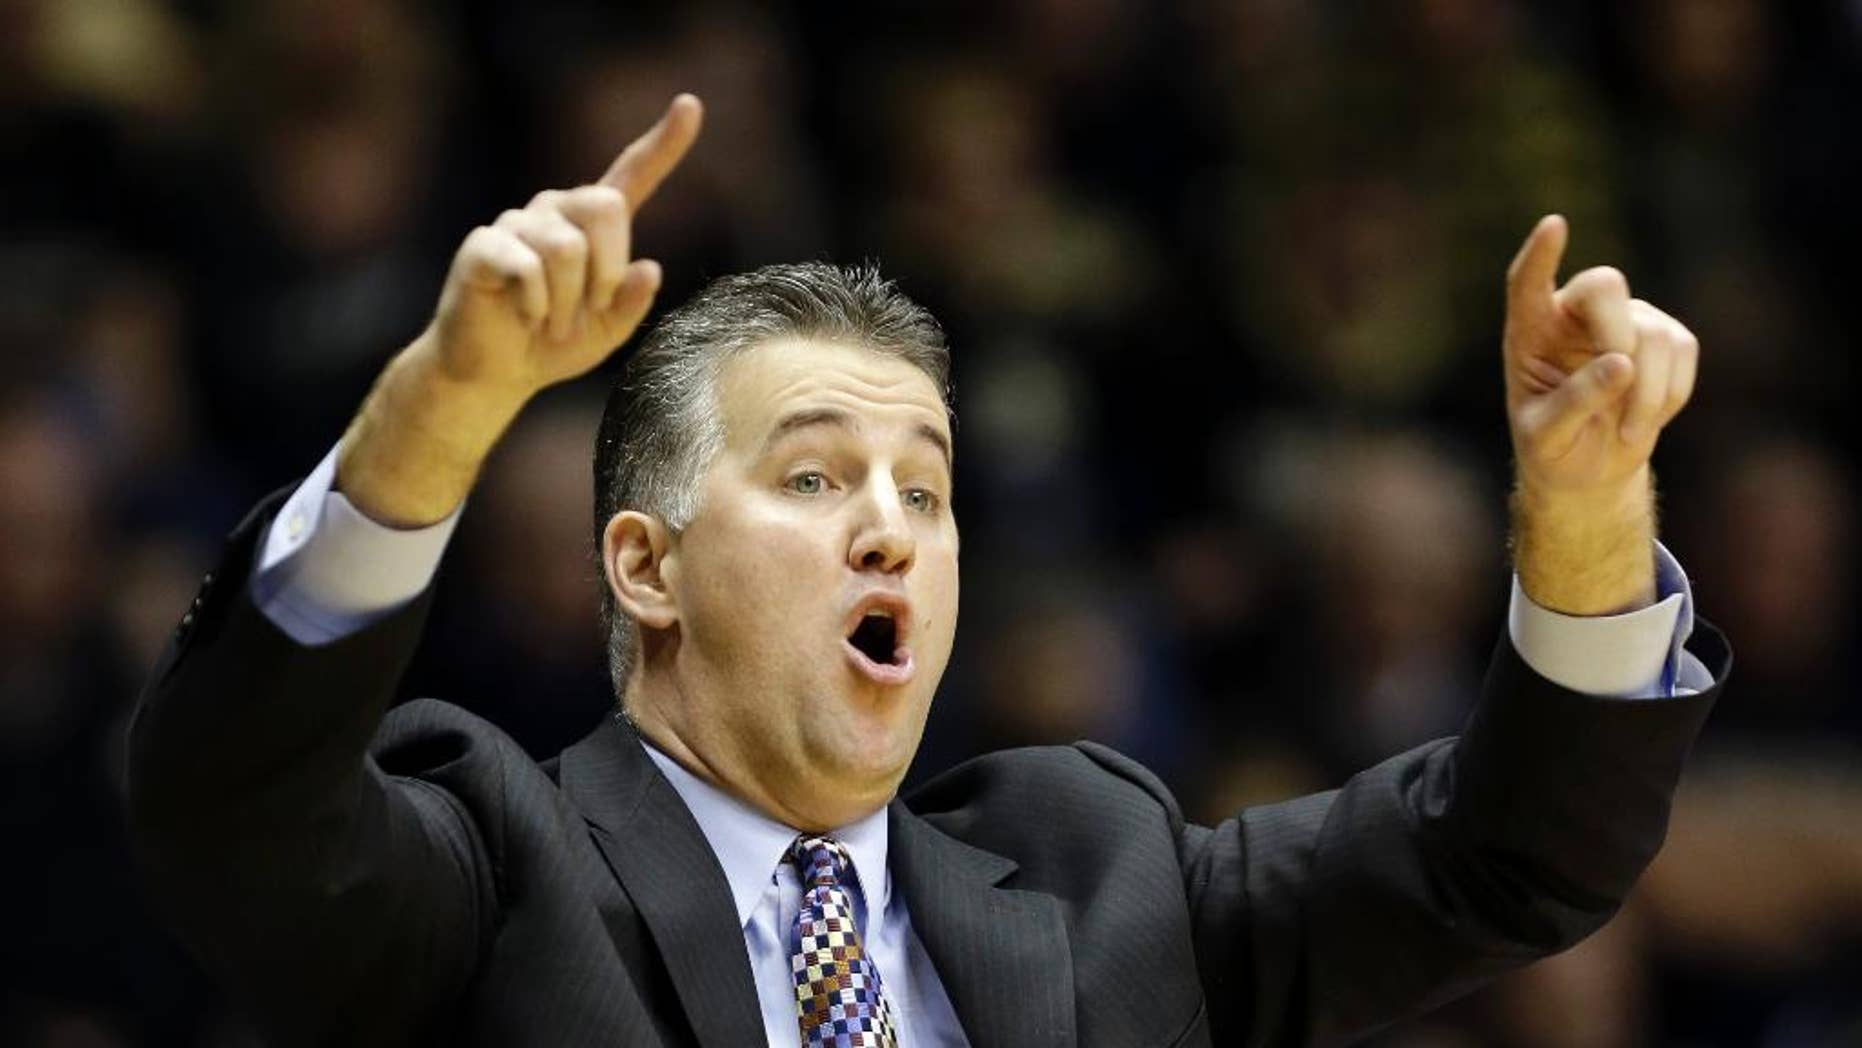 FILE - In this Jan. 12, 2014, file photo, Purdue head coach Matt Painter calls a play for his team as they play Nebraska in the second half of an NCAA college basketball game in West Lafayette, Ind. After losing 35 games over the past two seasons and finishing last in the Big Ten in 2013-14, Painter is going old-school. He wants to bring back the blue-collar, overachieving culture that made the Boilermakers so good for so many years.  (AP Photo/Michael Conroy, File)